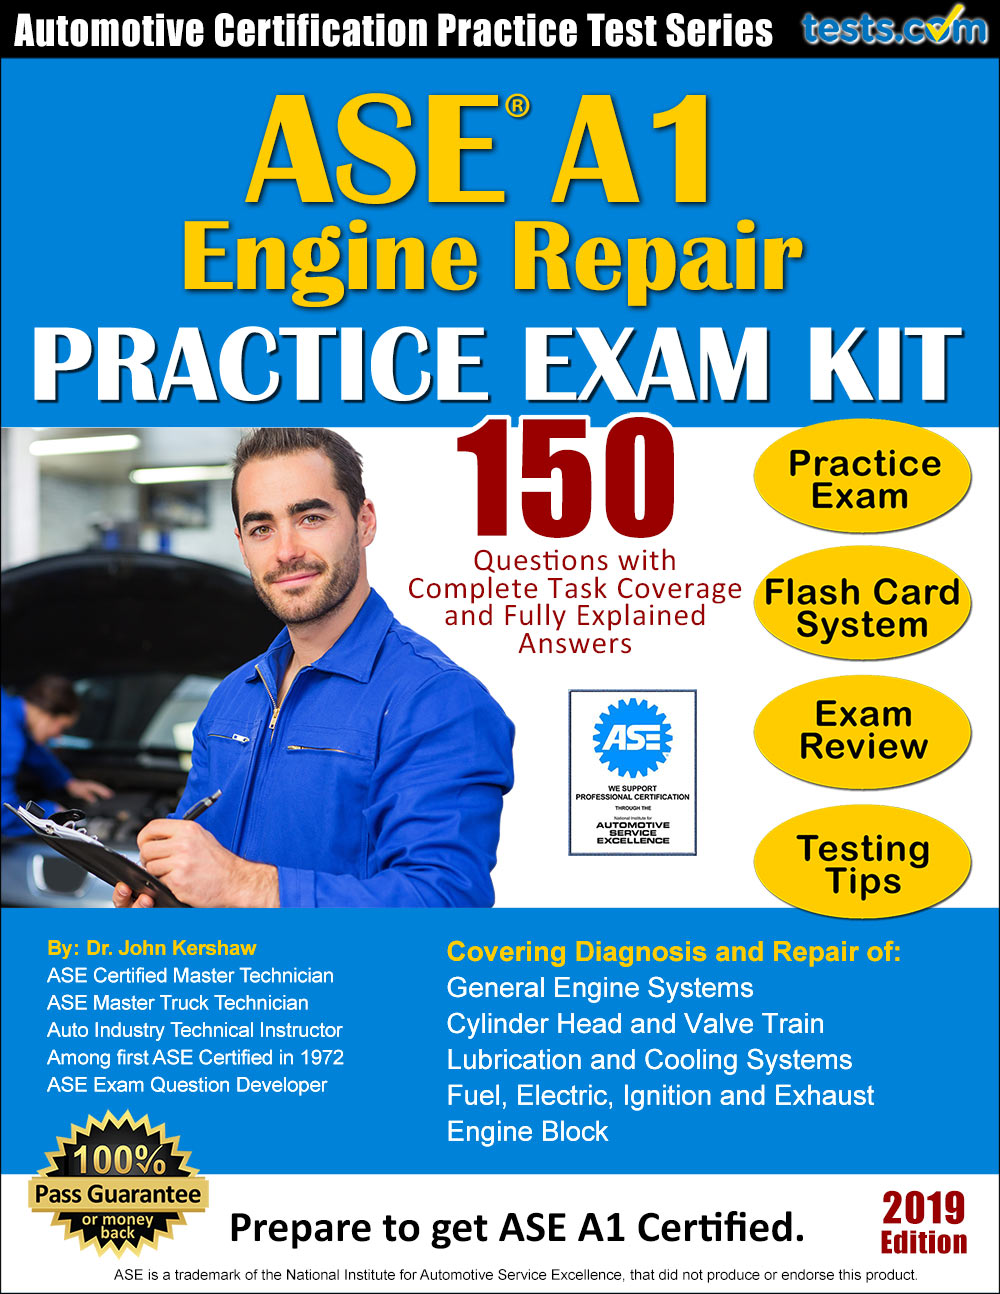 test ase practice a1 repair engine explained certification task coverage answers fully pass written expert complete using